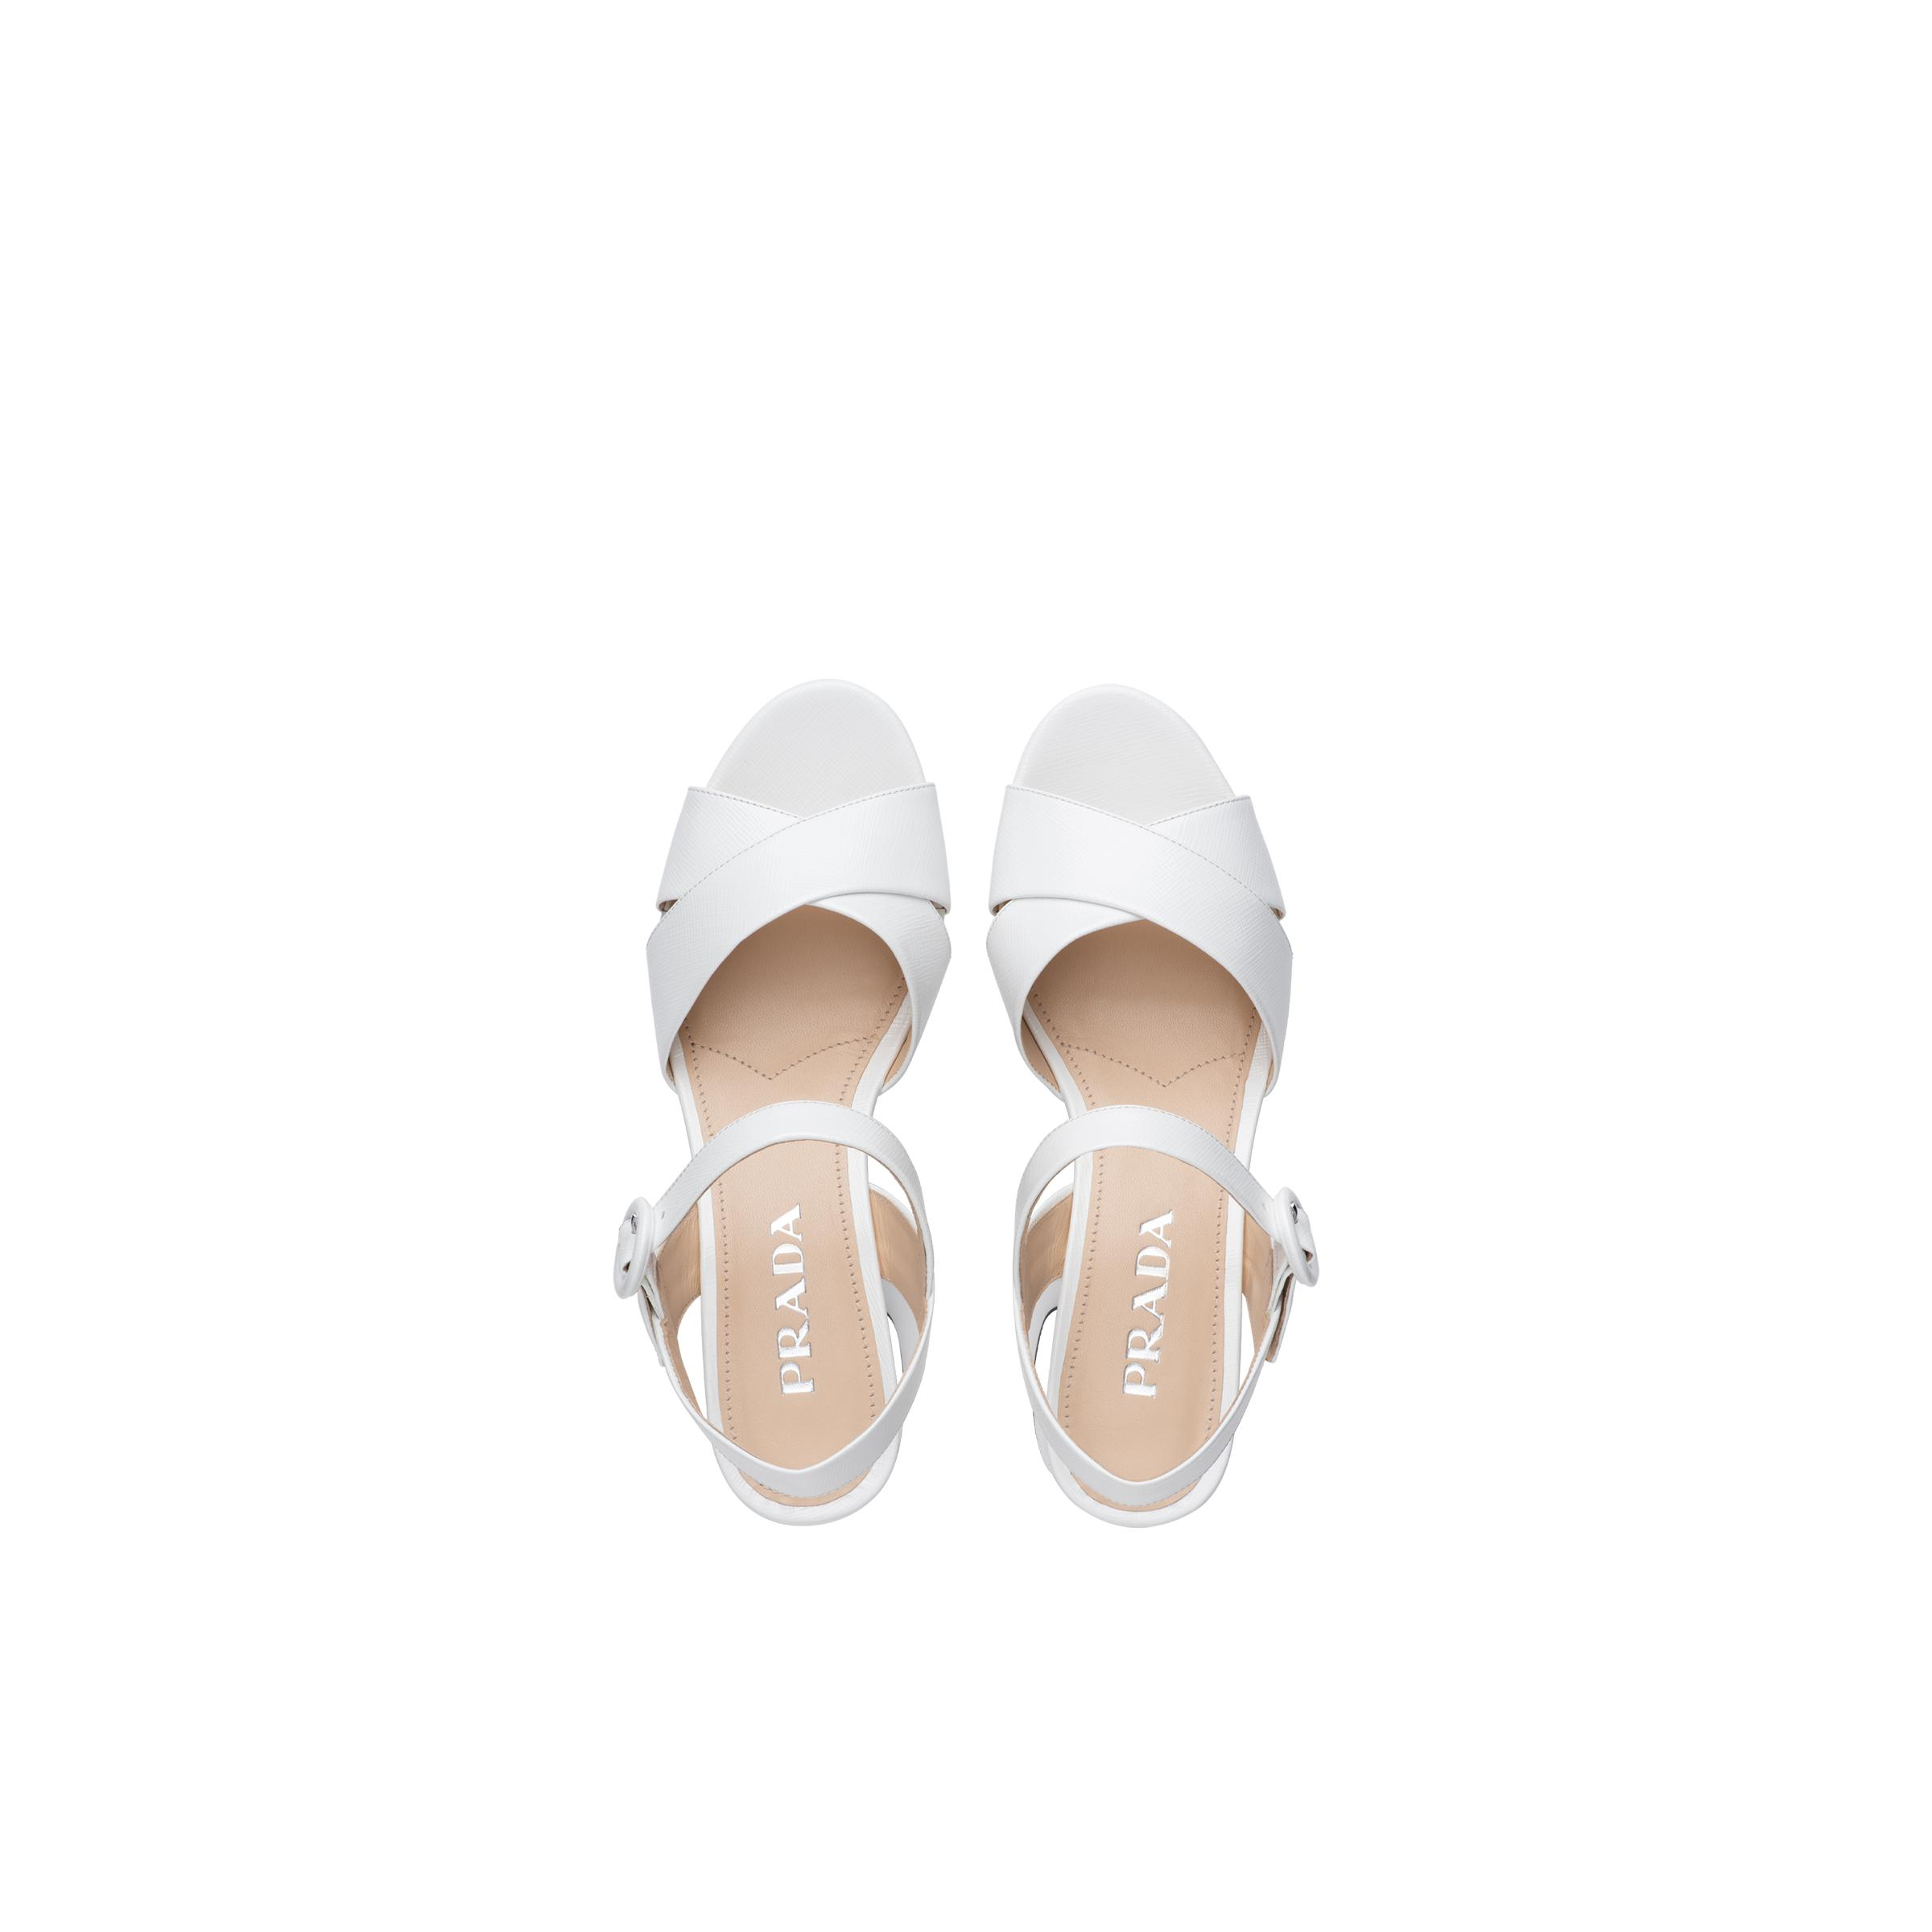 Patent Leather Sandals Women White 1